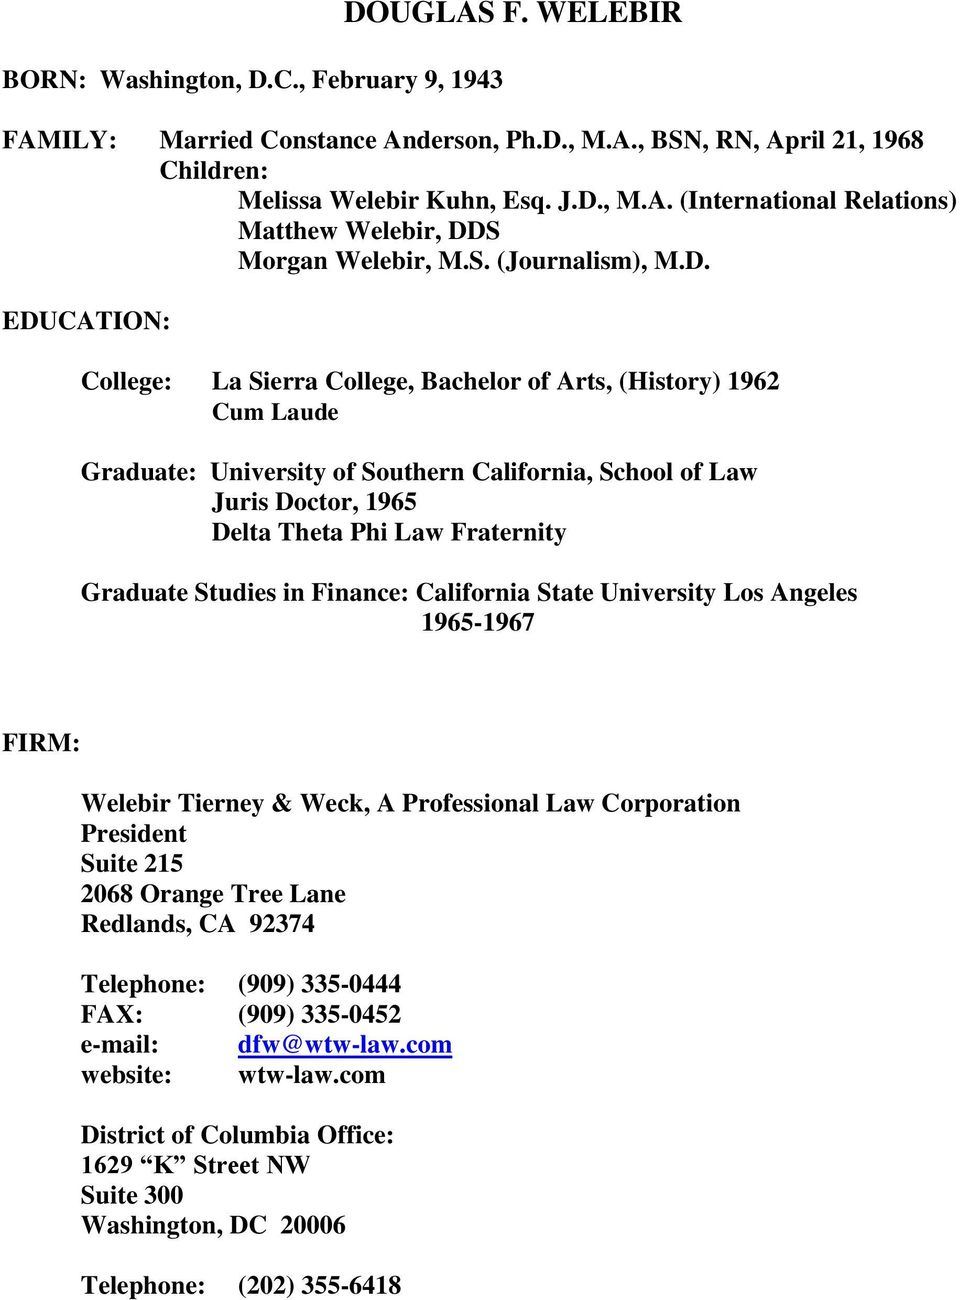 EDUCATION: College: La Sierra College, Bachelor of Arts, (History) 1962 Cum Laude Graduate: University of Southern California, School of Law Juris Doctor, 1965 Delta Theta Phi Law Fraternity Graduate